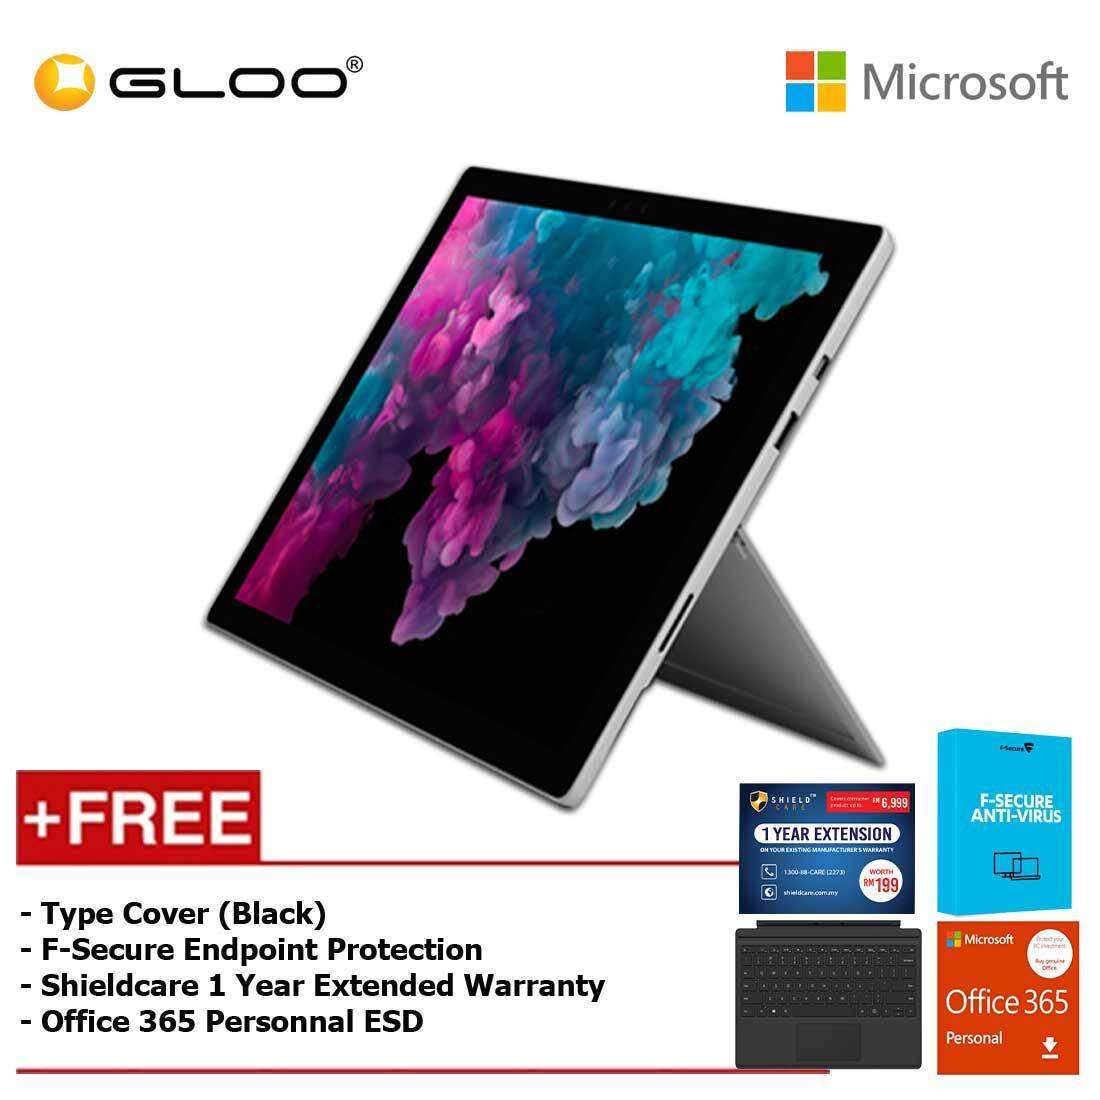 Microsoft Surface Pro 6 Core i5/8GB RAM -128GB + Type Cover Black + Office 365 Personal (ESD) + F-Secure Endpoint Protection + Shieldcare 1 Year Extended Warranty Malaysia